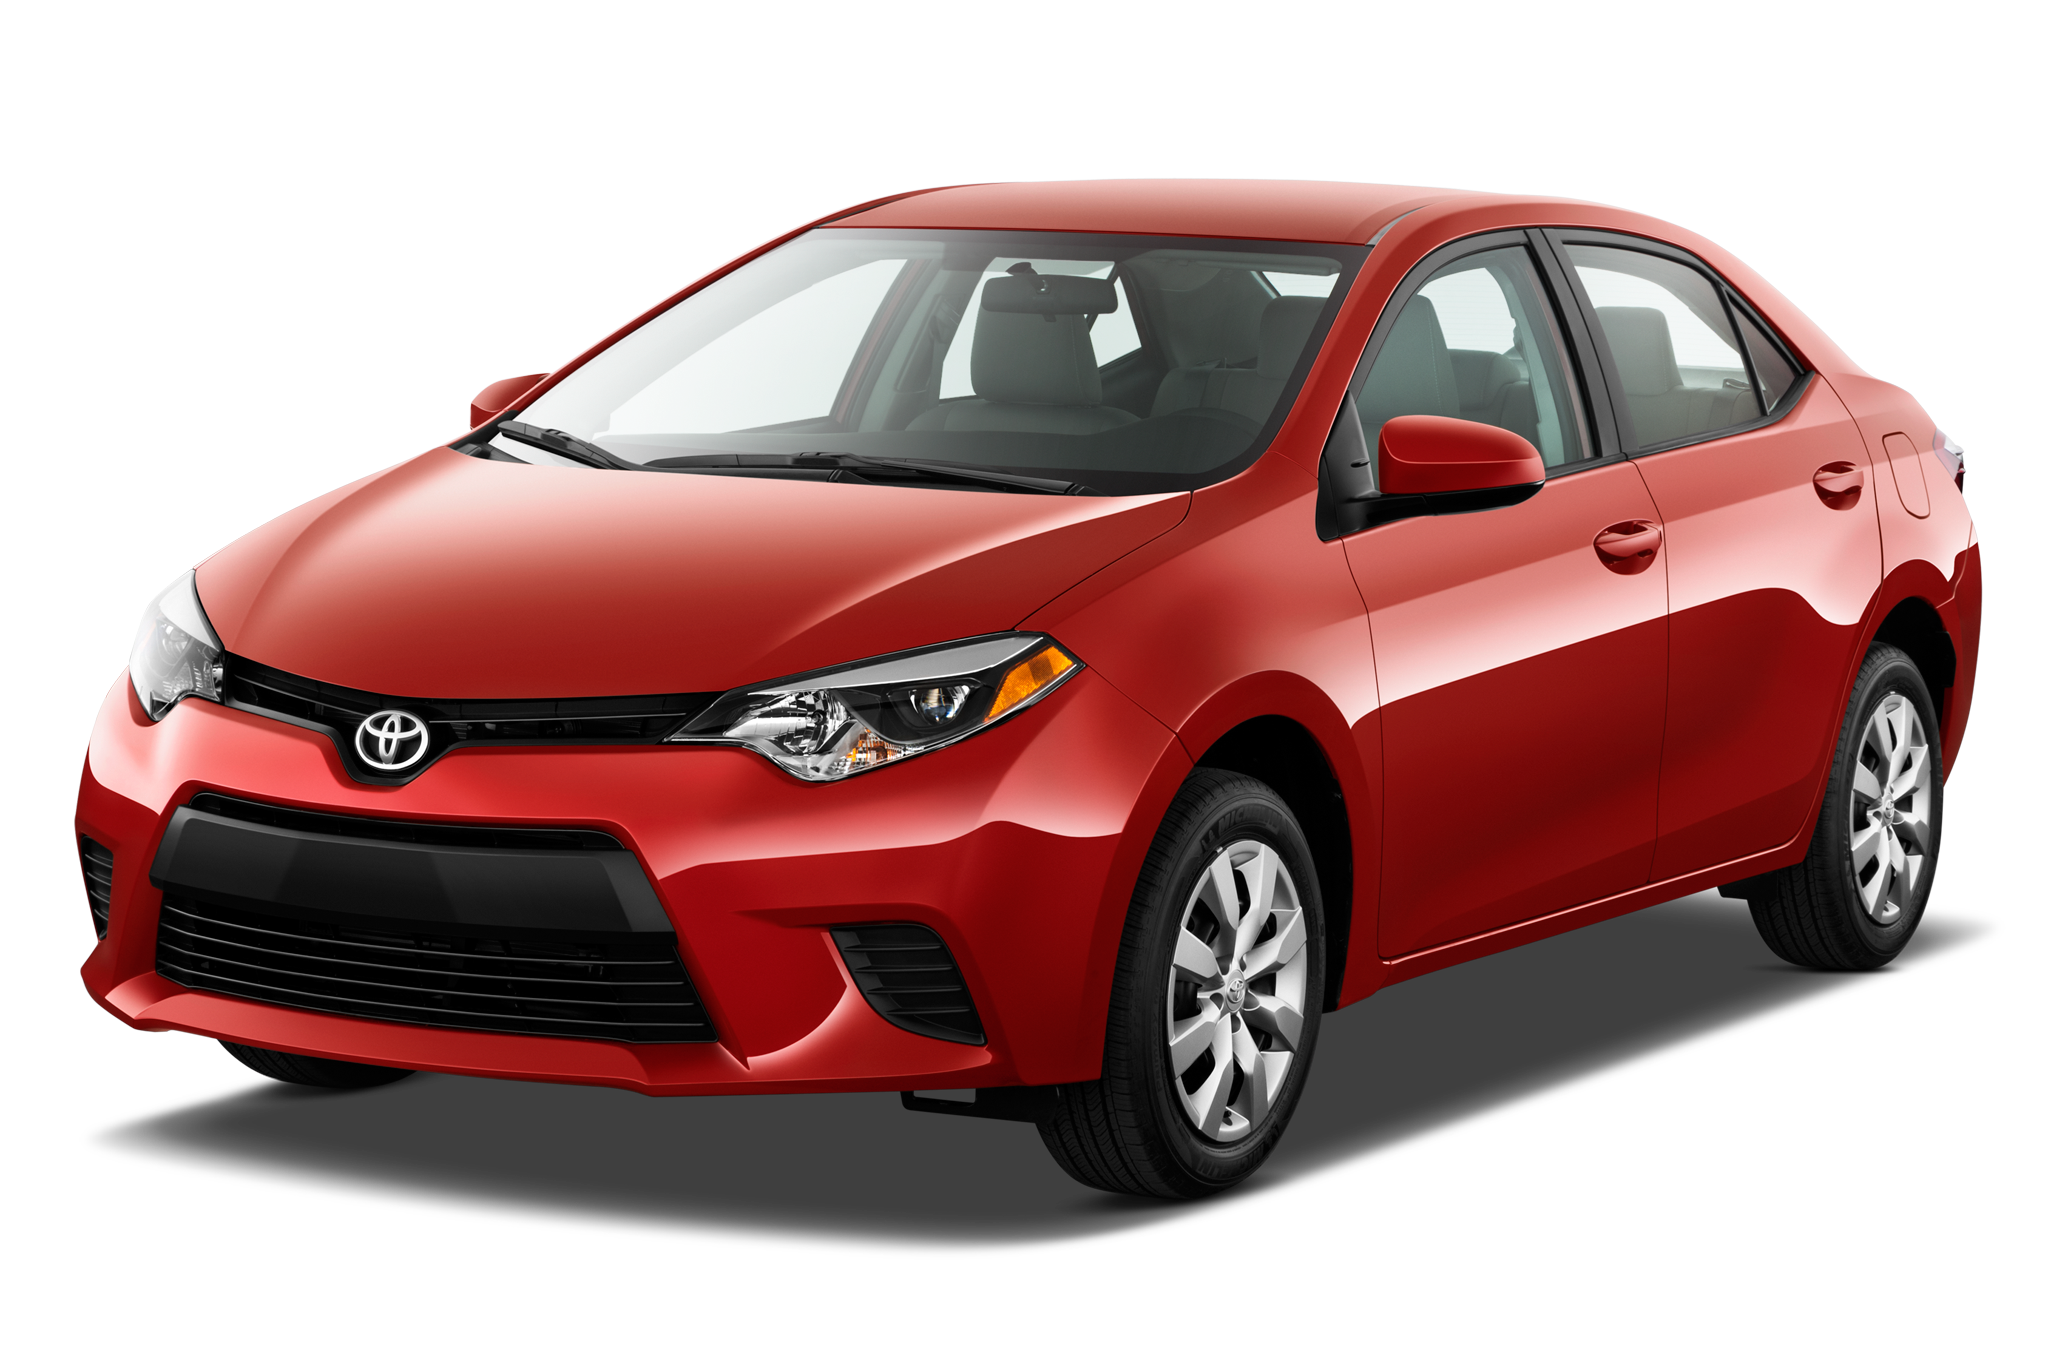 Toyota Corolla Strikes Sales in May 2019 – Rest of Auto industry Faces a Major Downfall.